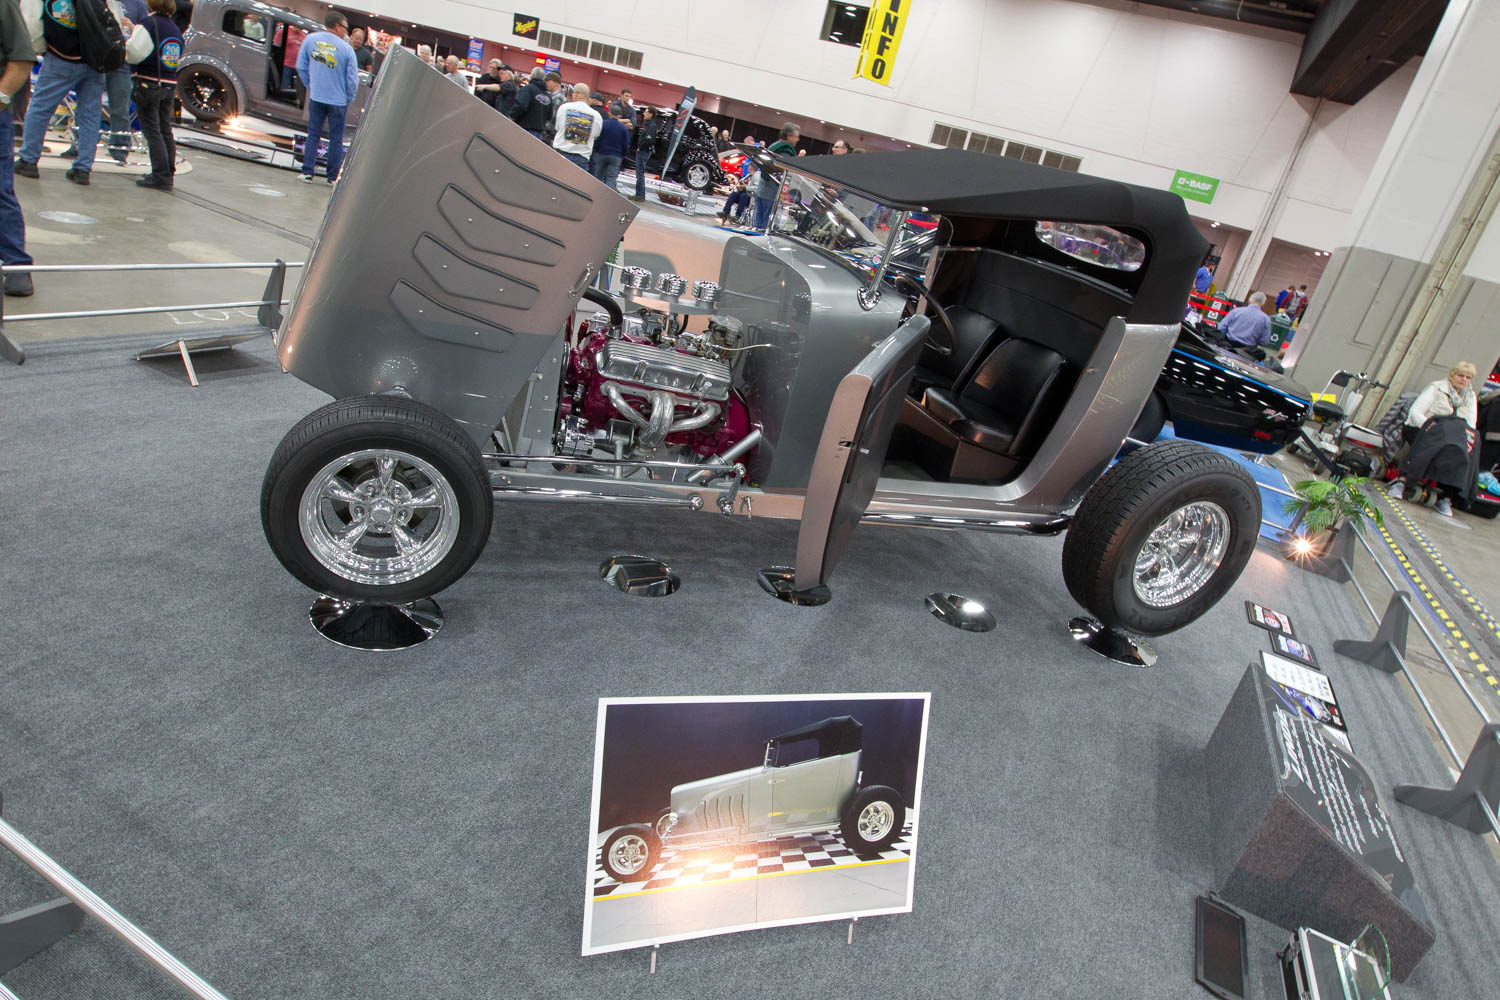 custom hot rod at Autorama 2019